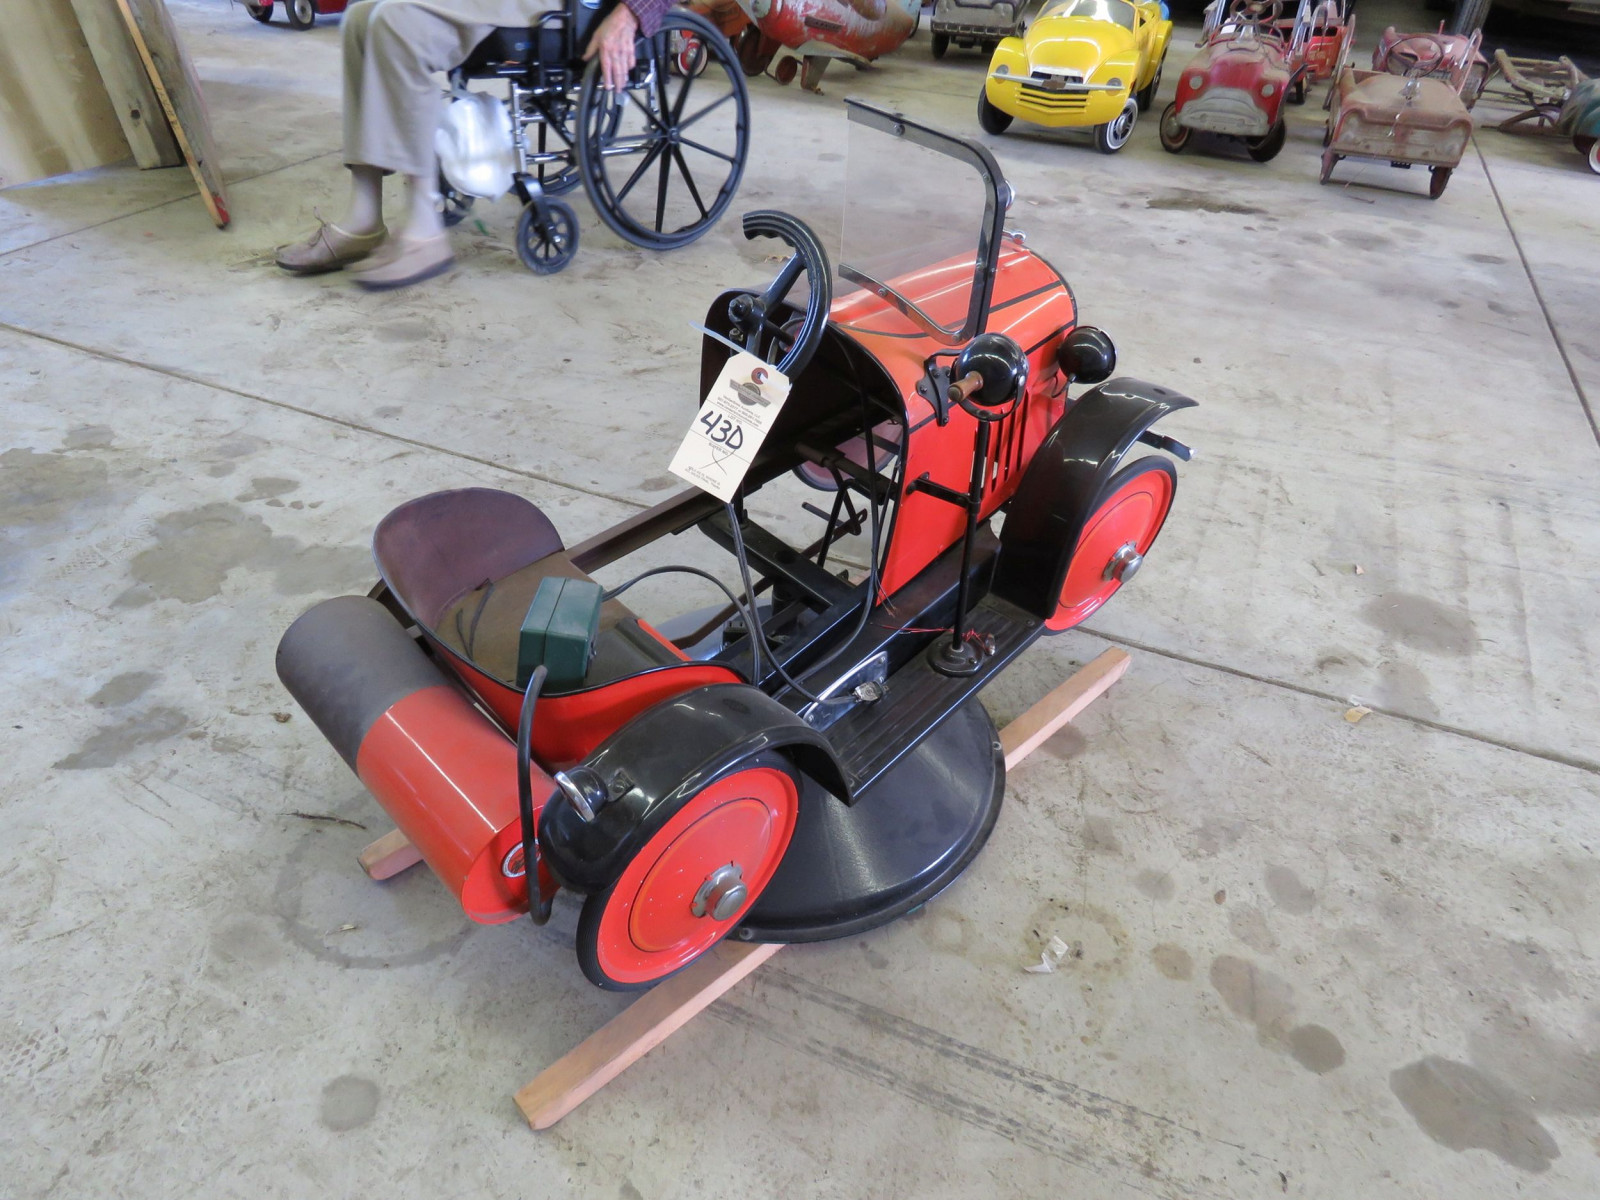 Vintage Steel Craft Pedal Car - Image 4